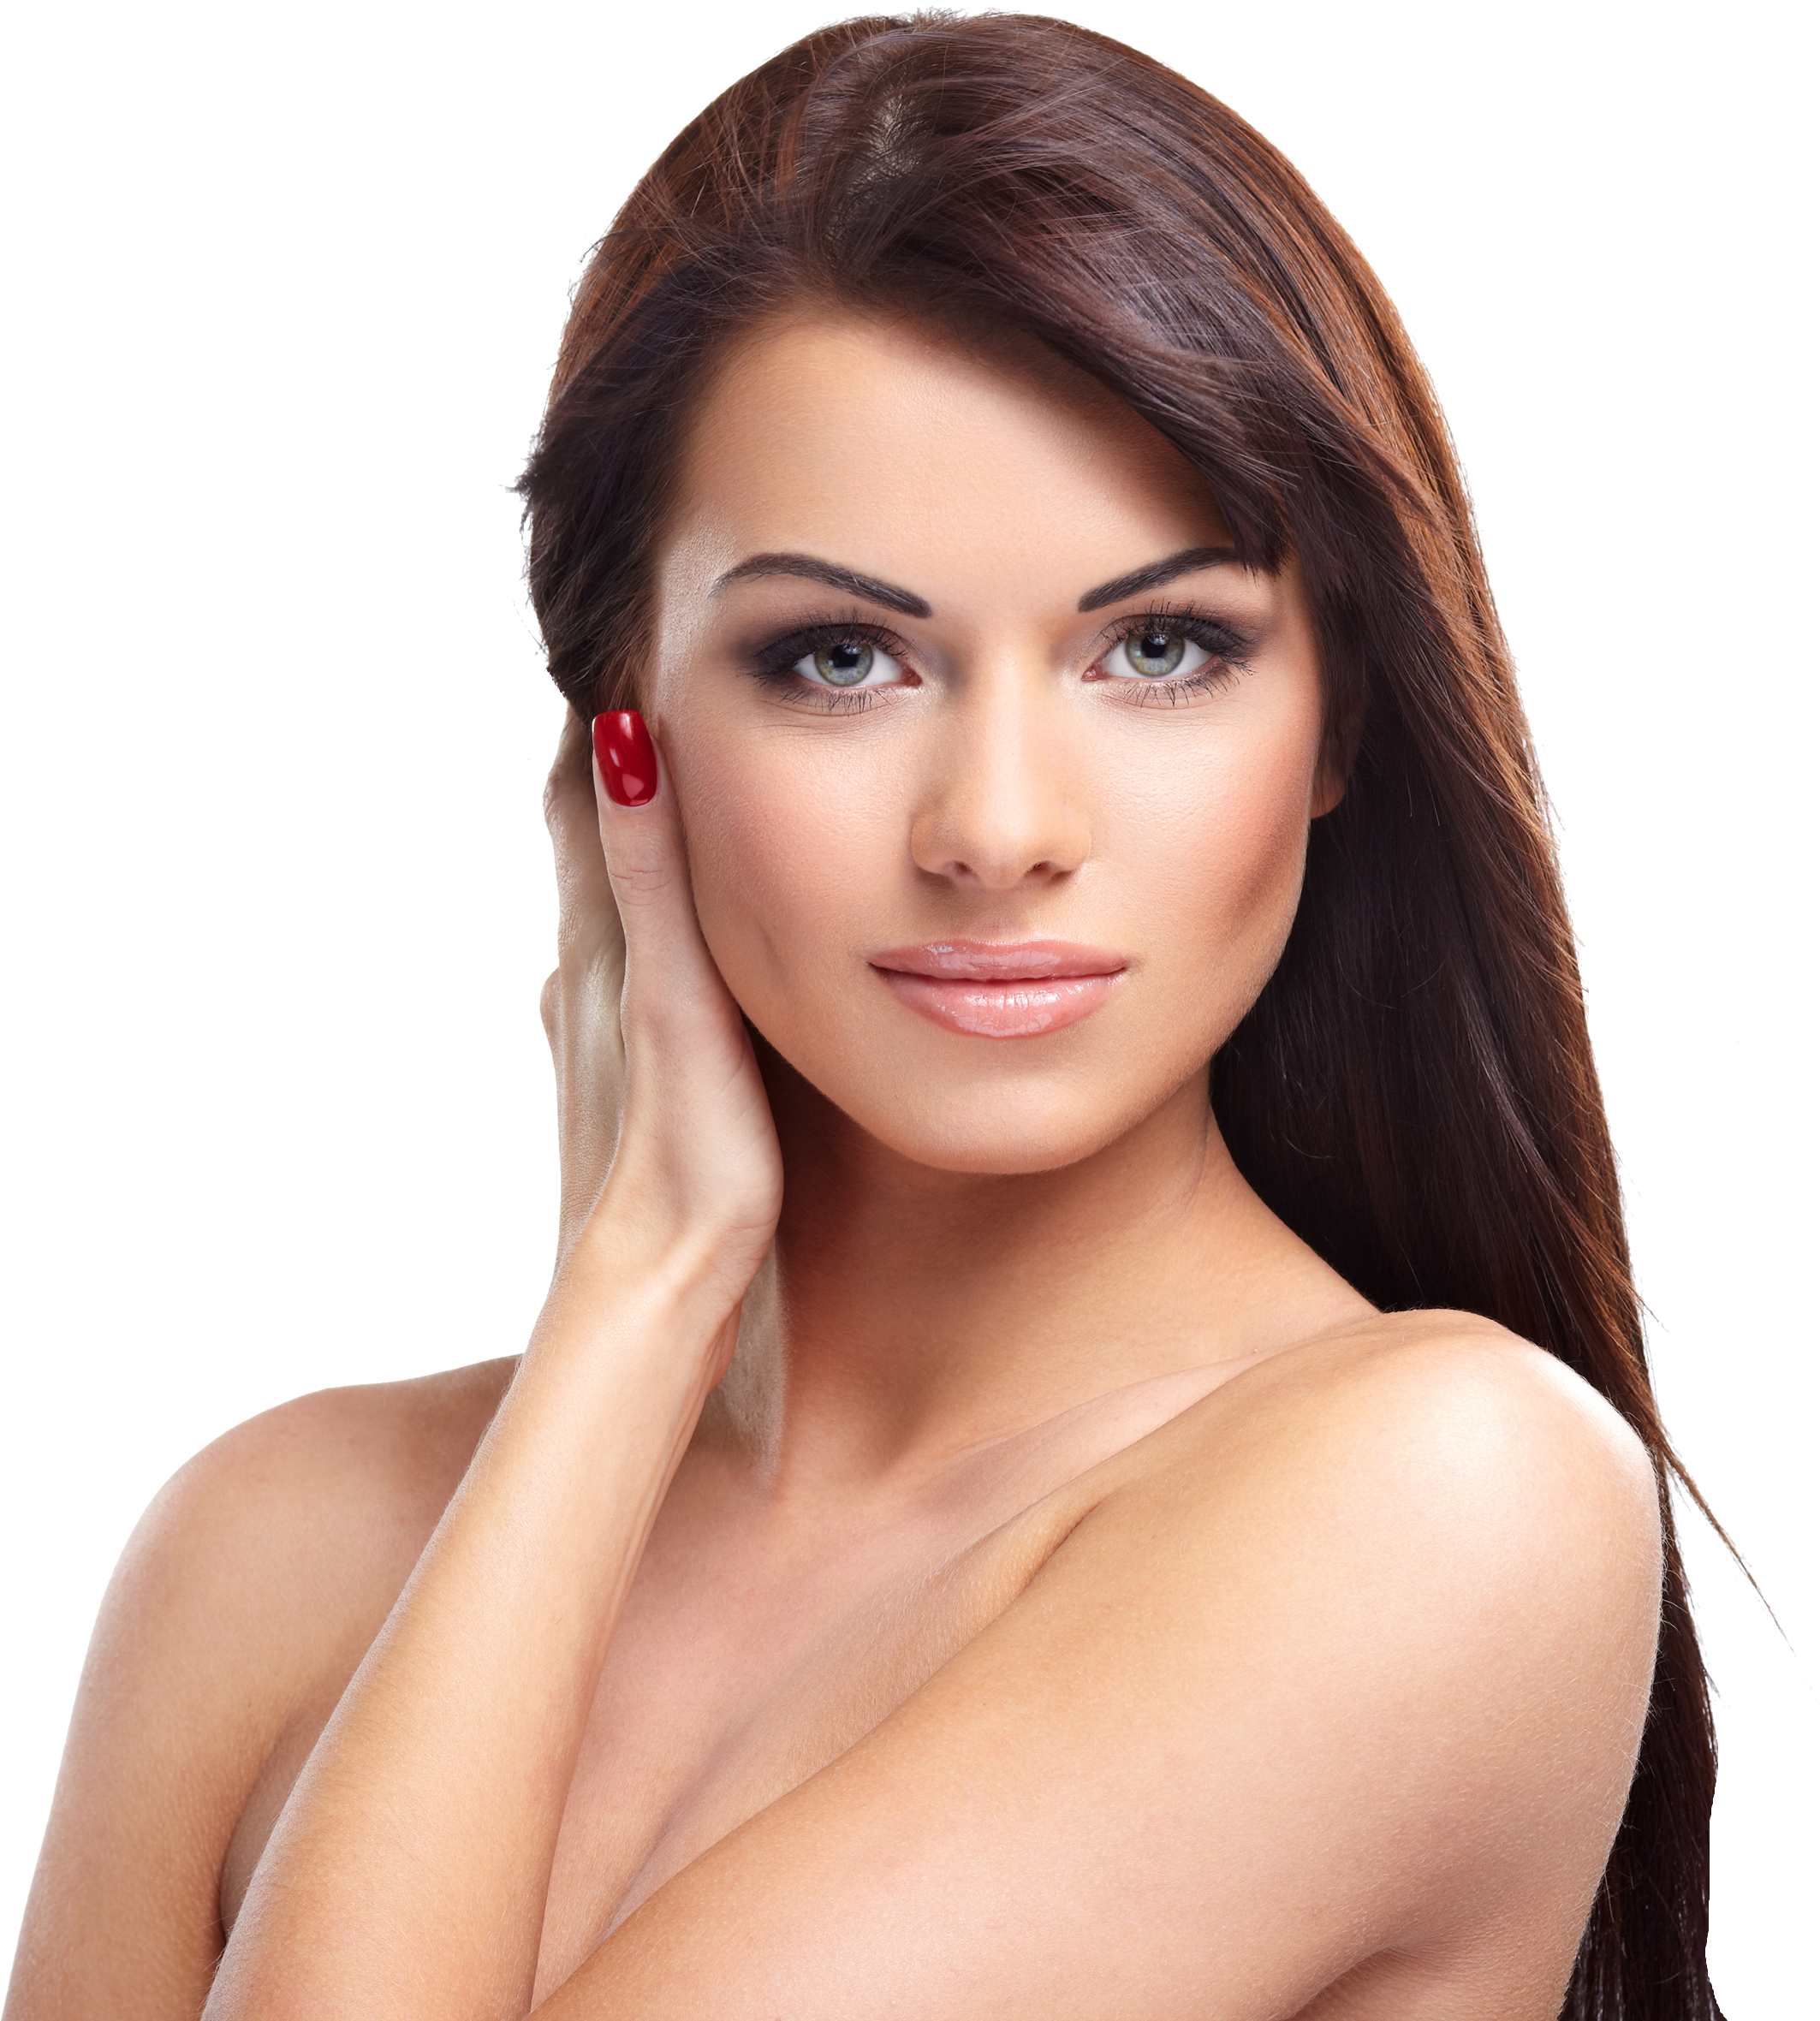 Woman face PNG - Face PNG